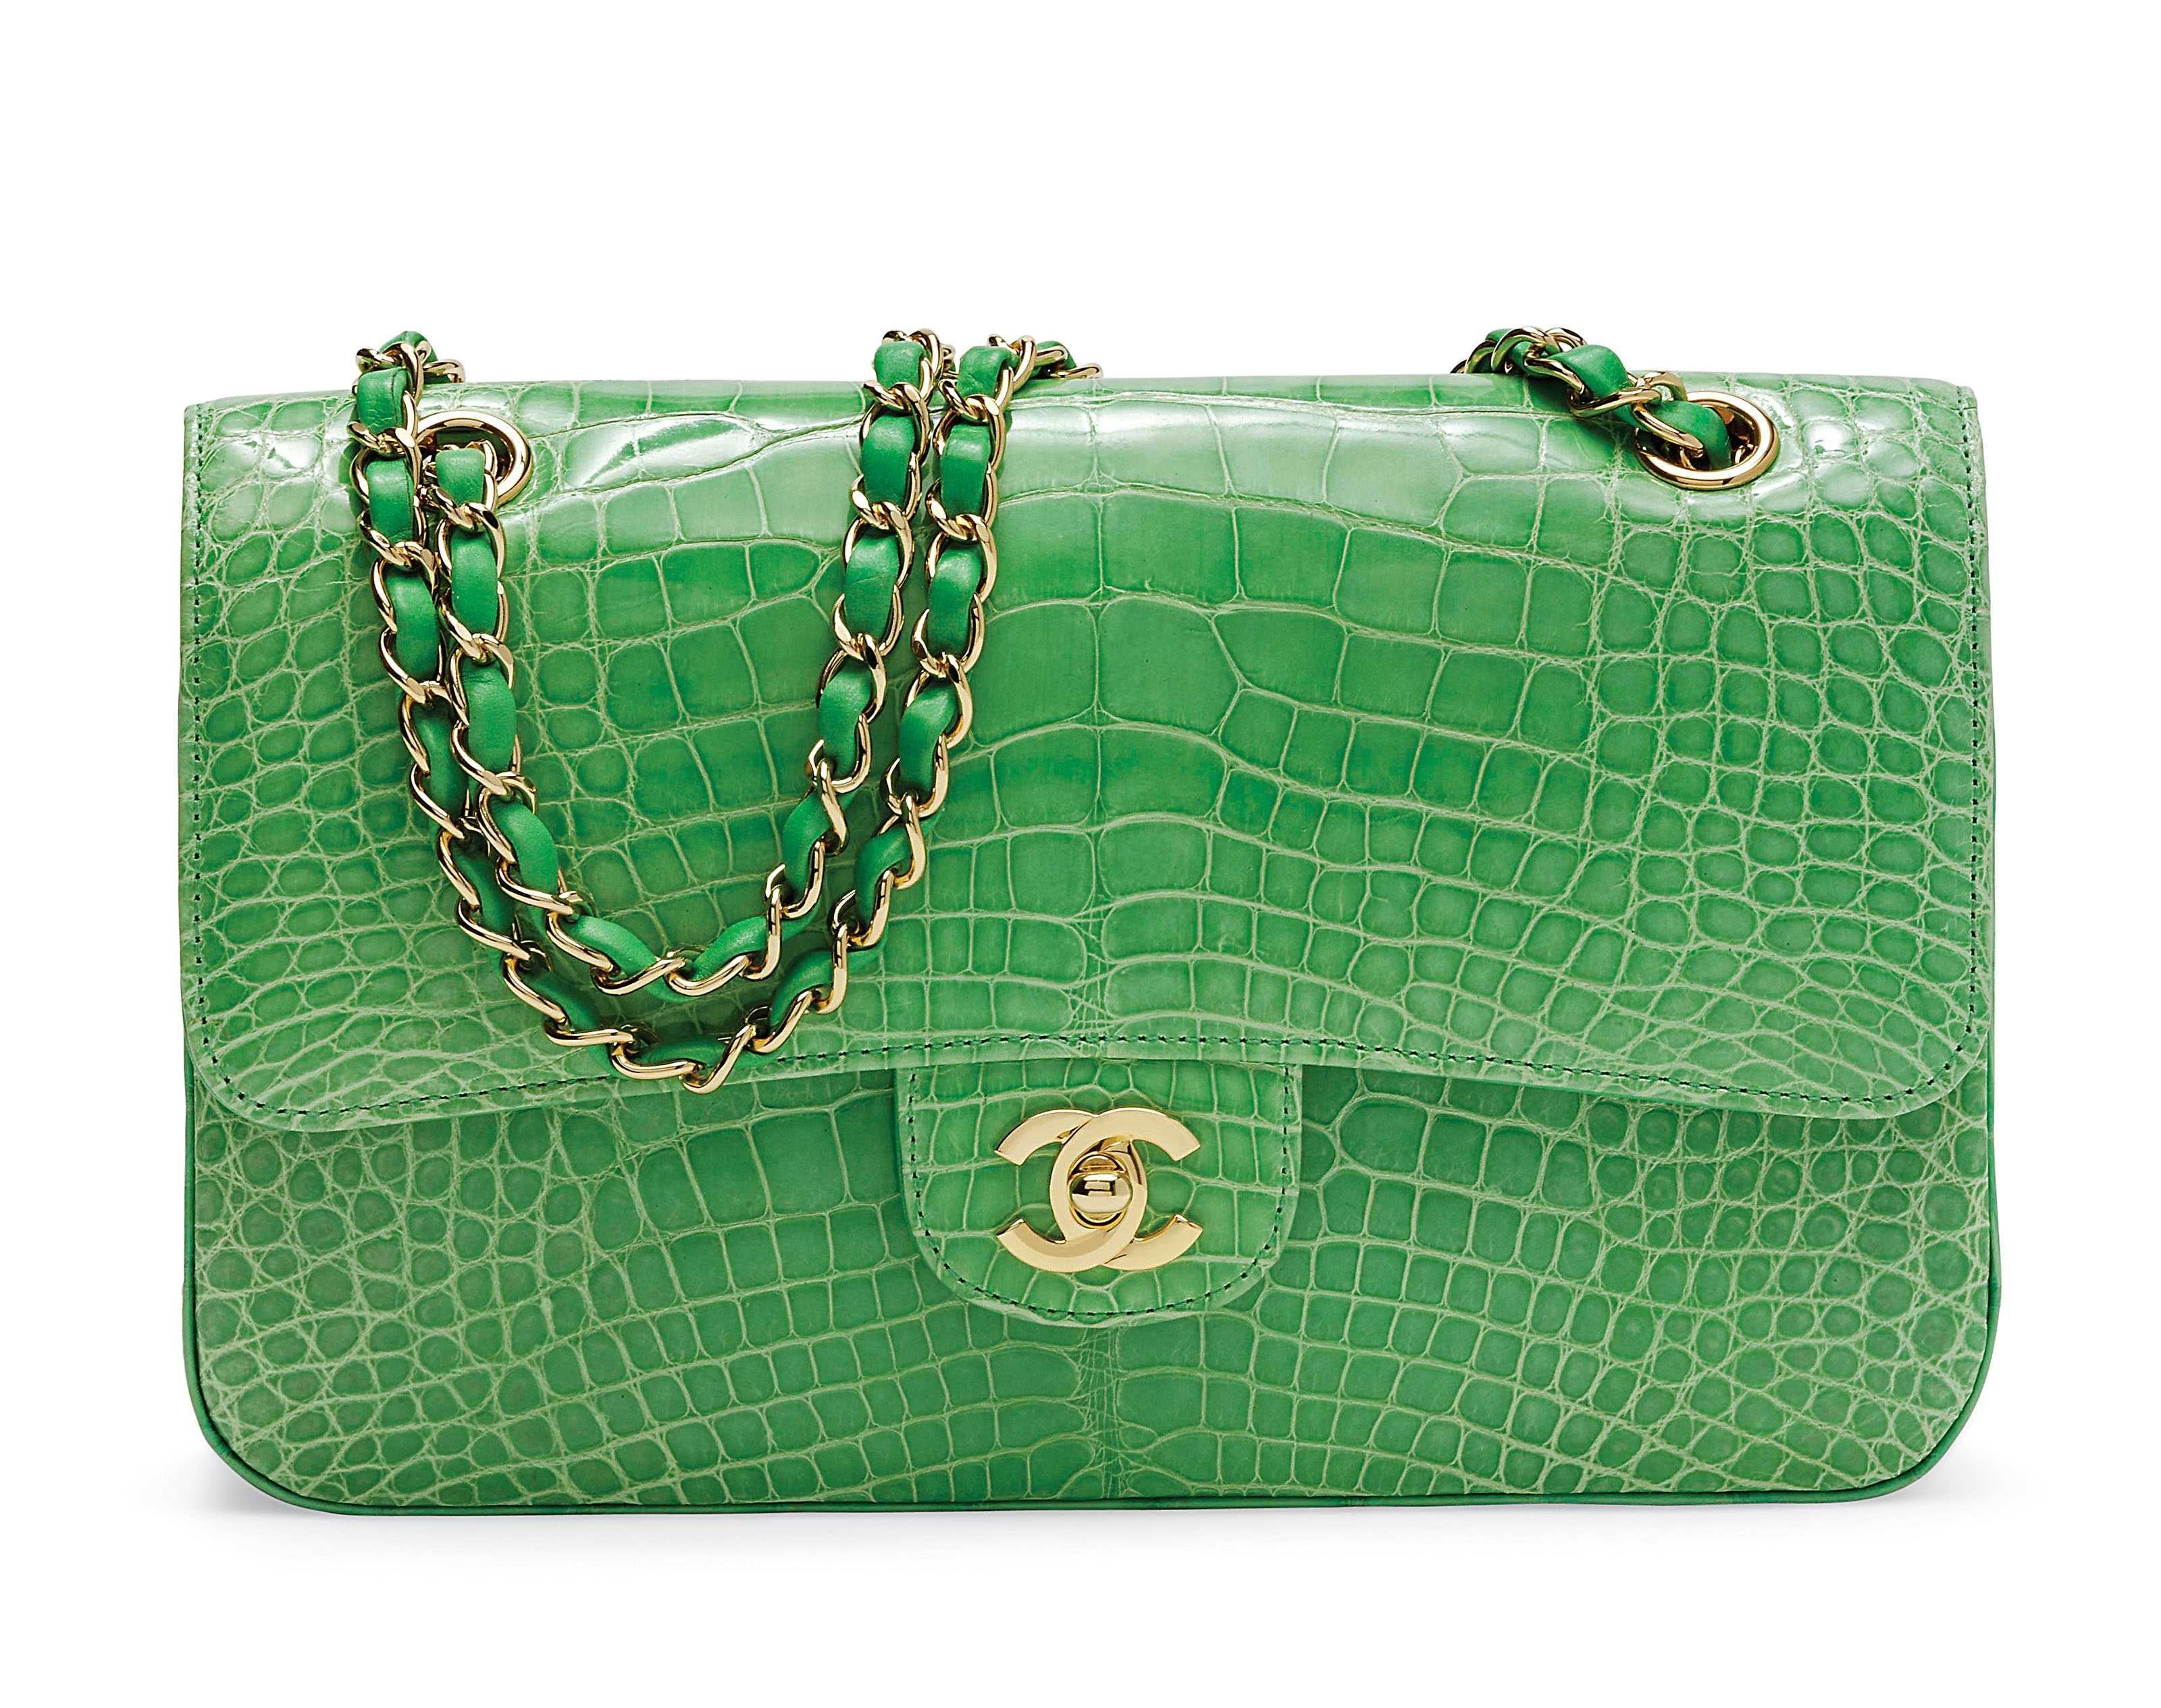 11bb6335c138 A LIME GREEN CROCODILE CLASSIC DOUBLE FLAP BAG Christie s Luxury Handbags  and Accessories